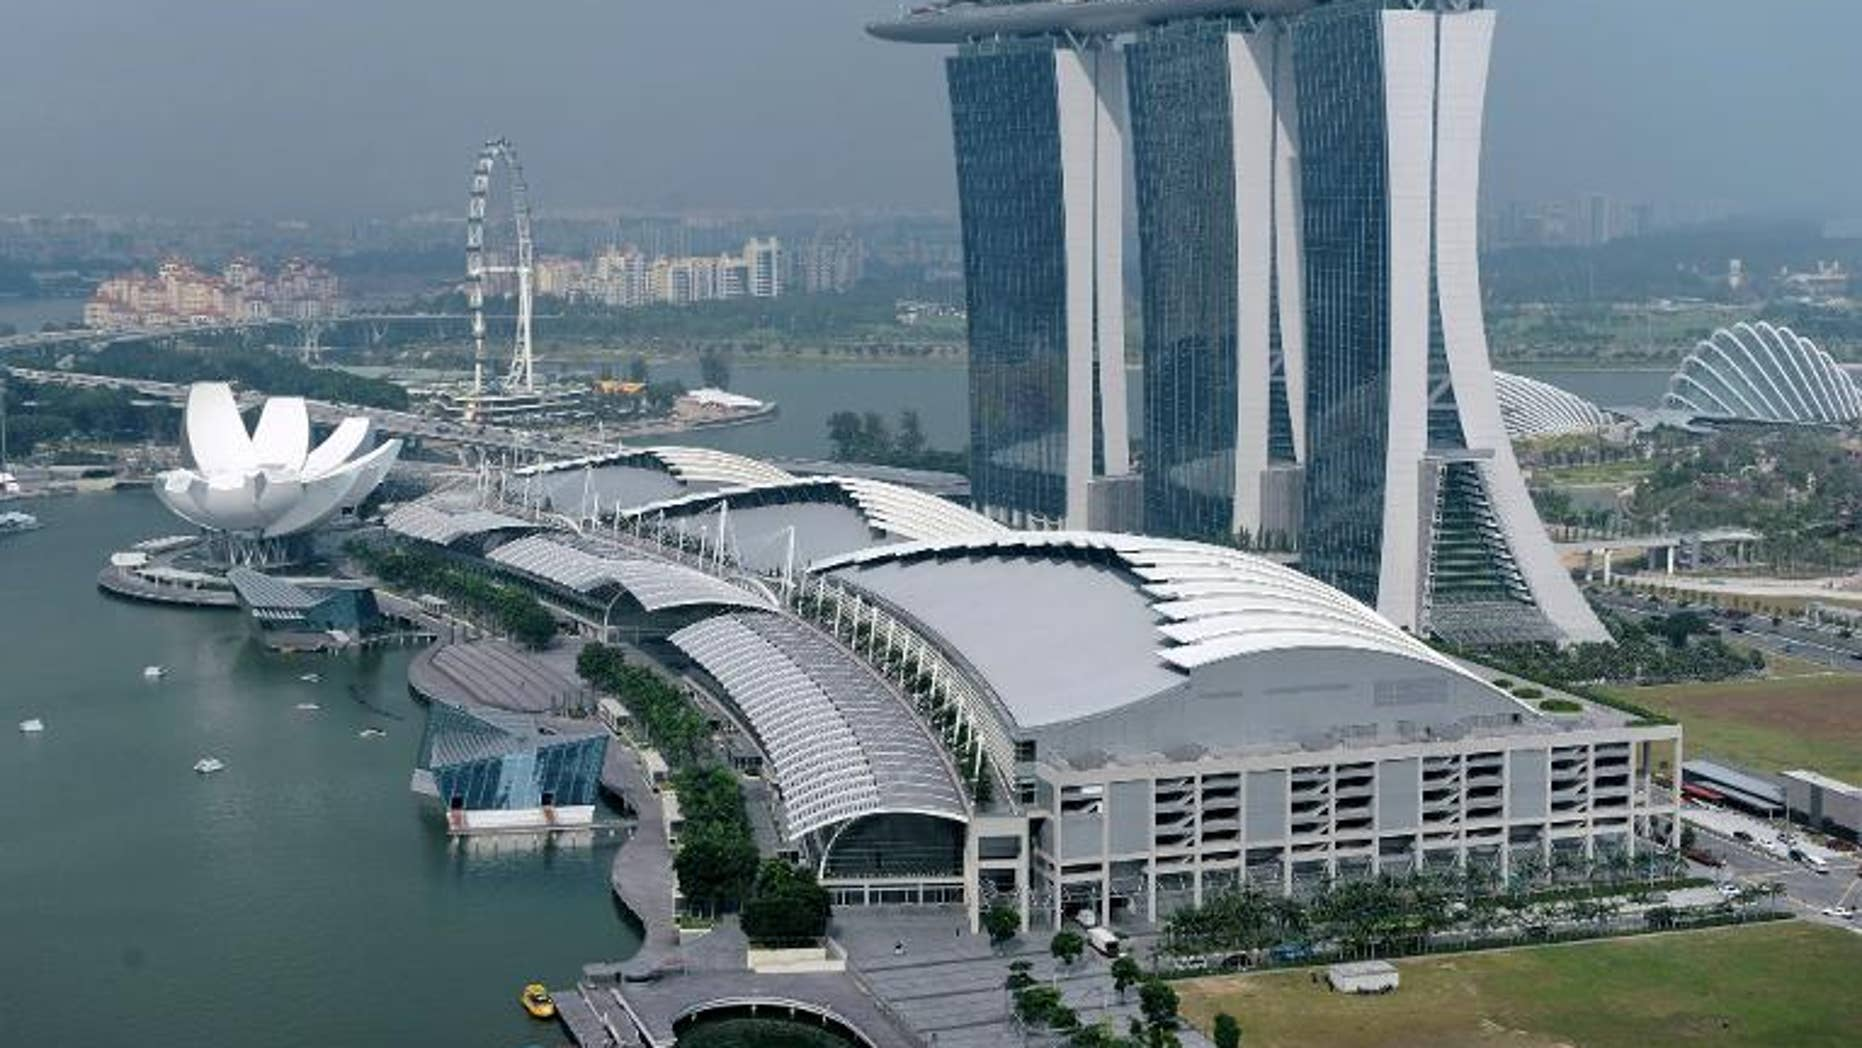 A view of Singapore including Marina Bay Sands hotels and casino, pictured on January 17, 2012